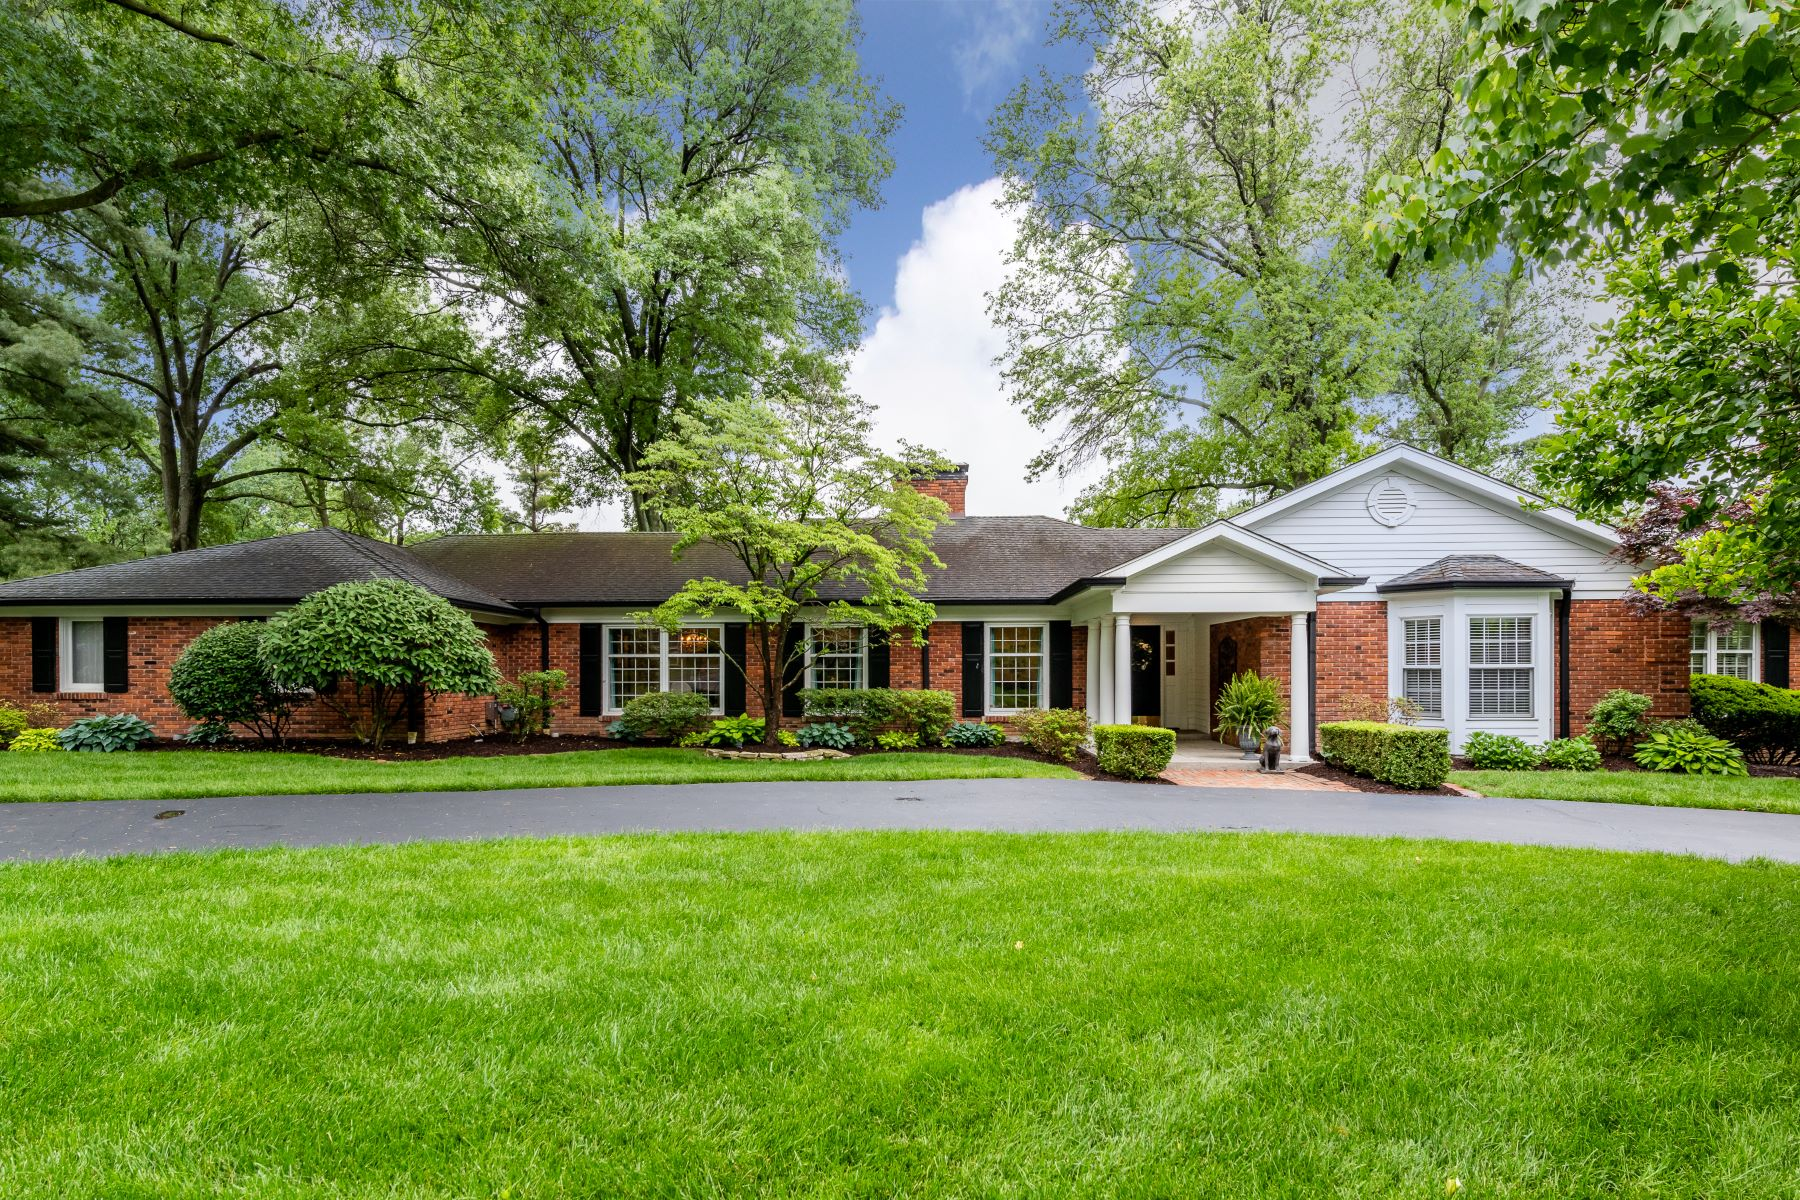 Single Family Homes for Sale at Breathtaking Renovation 38 Salem Estates Drive Ladue, Missouri 63124 United States